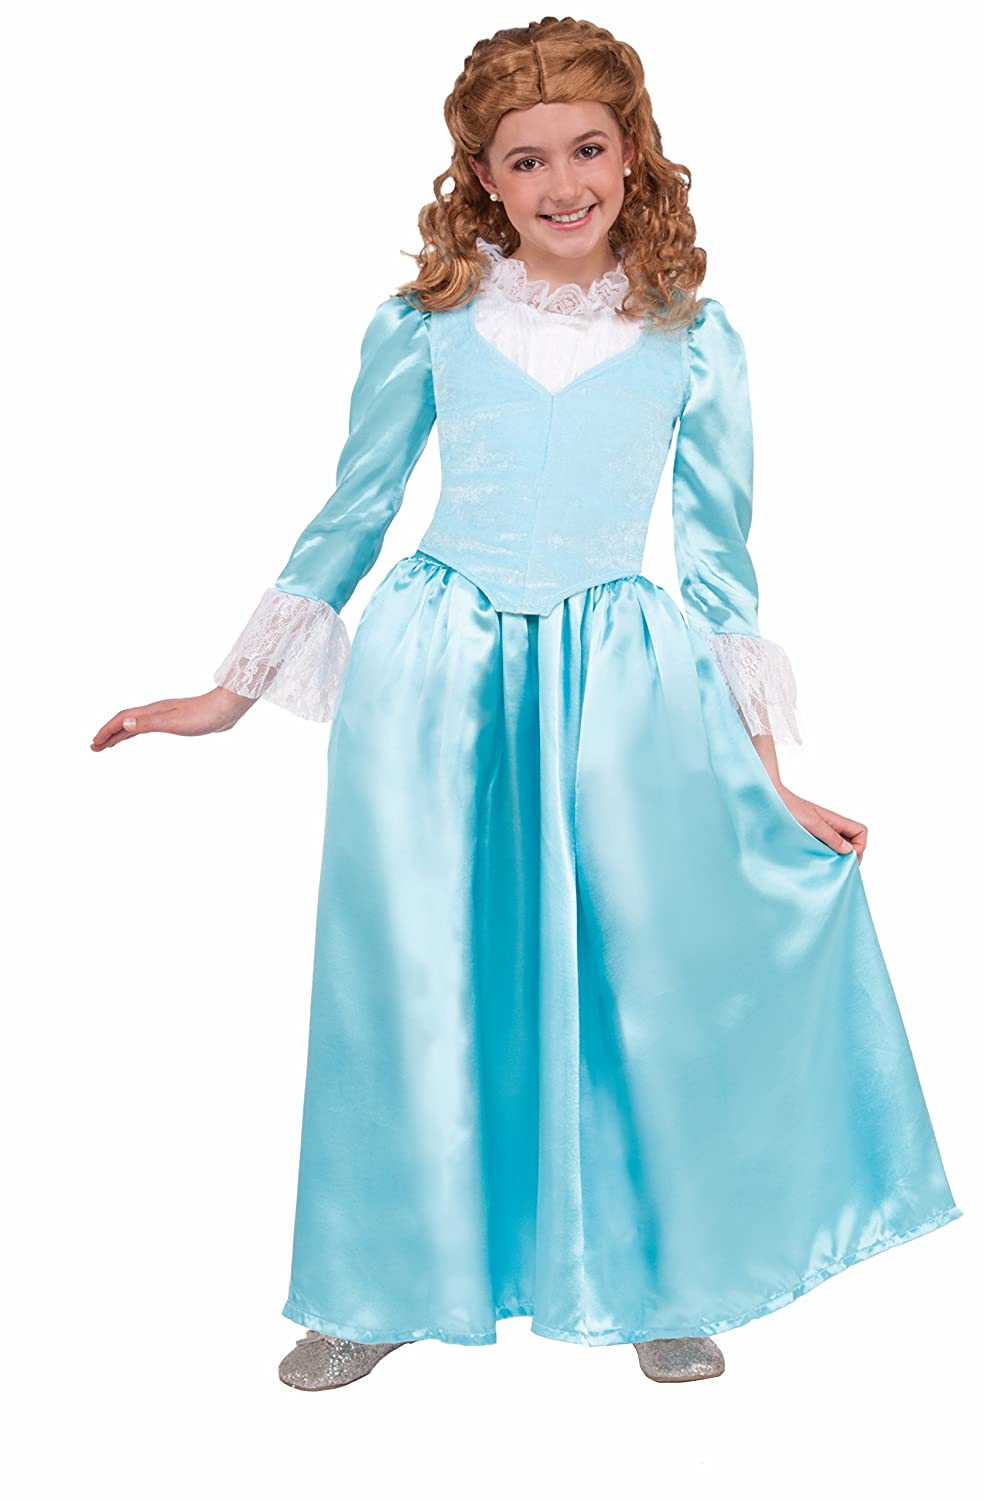 Forum Novelties Kids Colonial Lady Costume, bluee, bluee, bluee, Large f29d2f